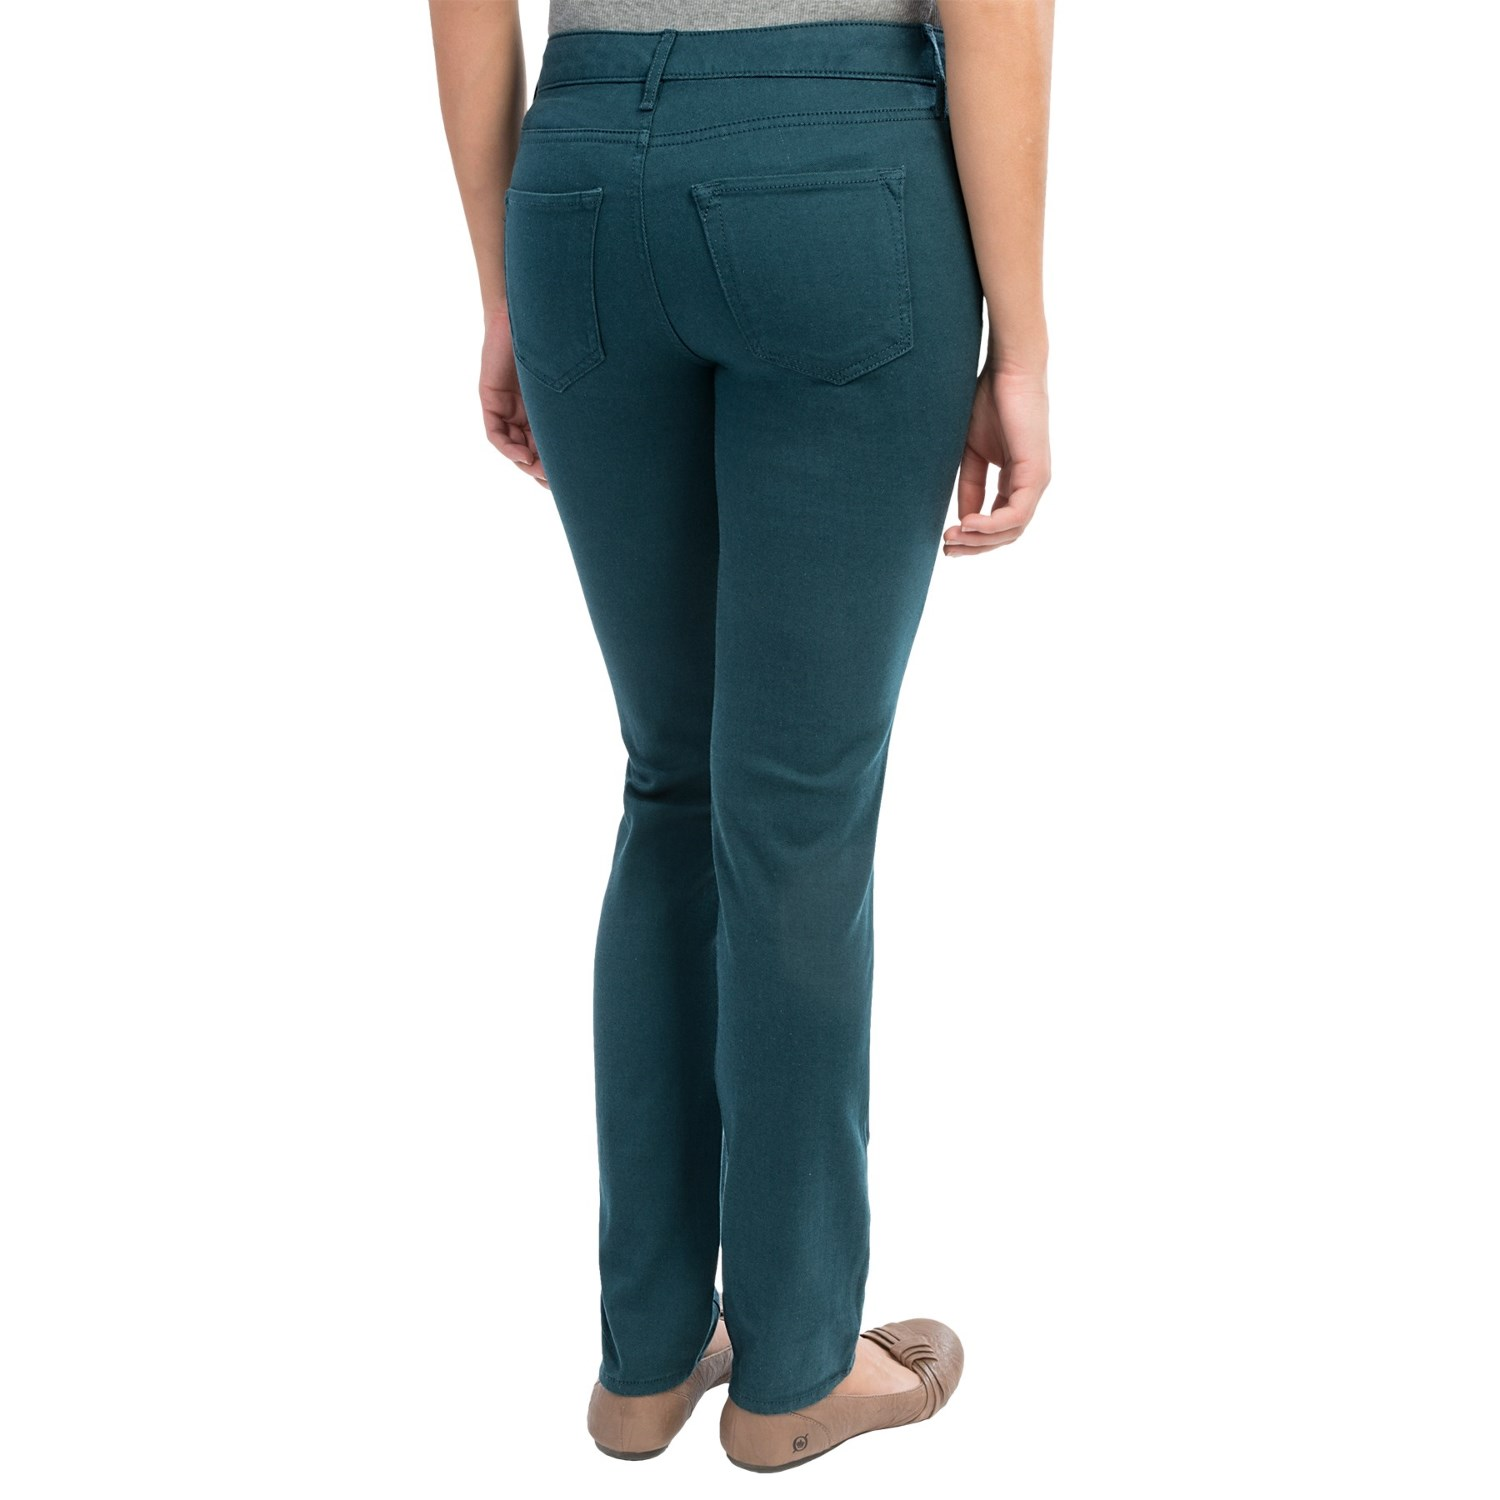 Shop for women's Colored Jeans that feel as good as they look at American Eagle. Shop all styles, fits and sizes only at celebtubesnews.ml #AEJeans.